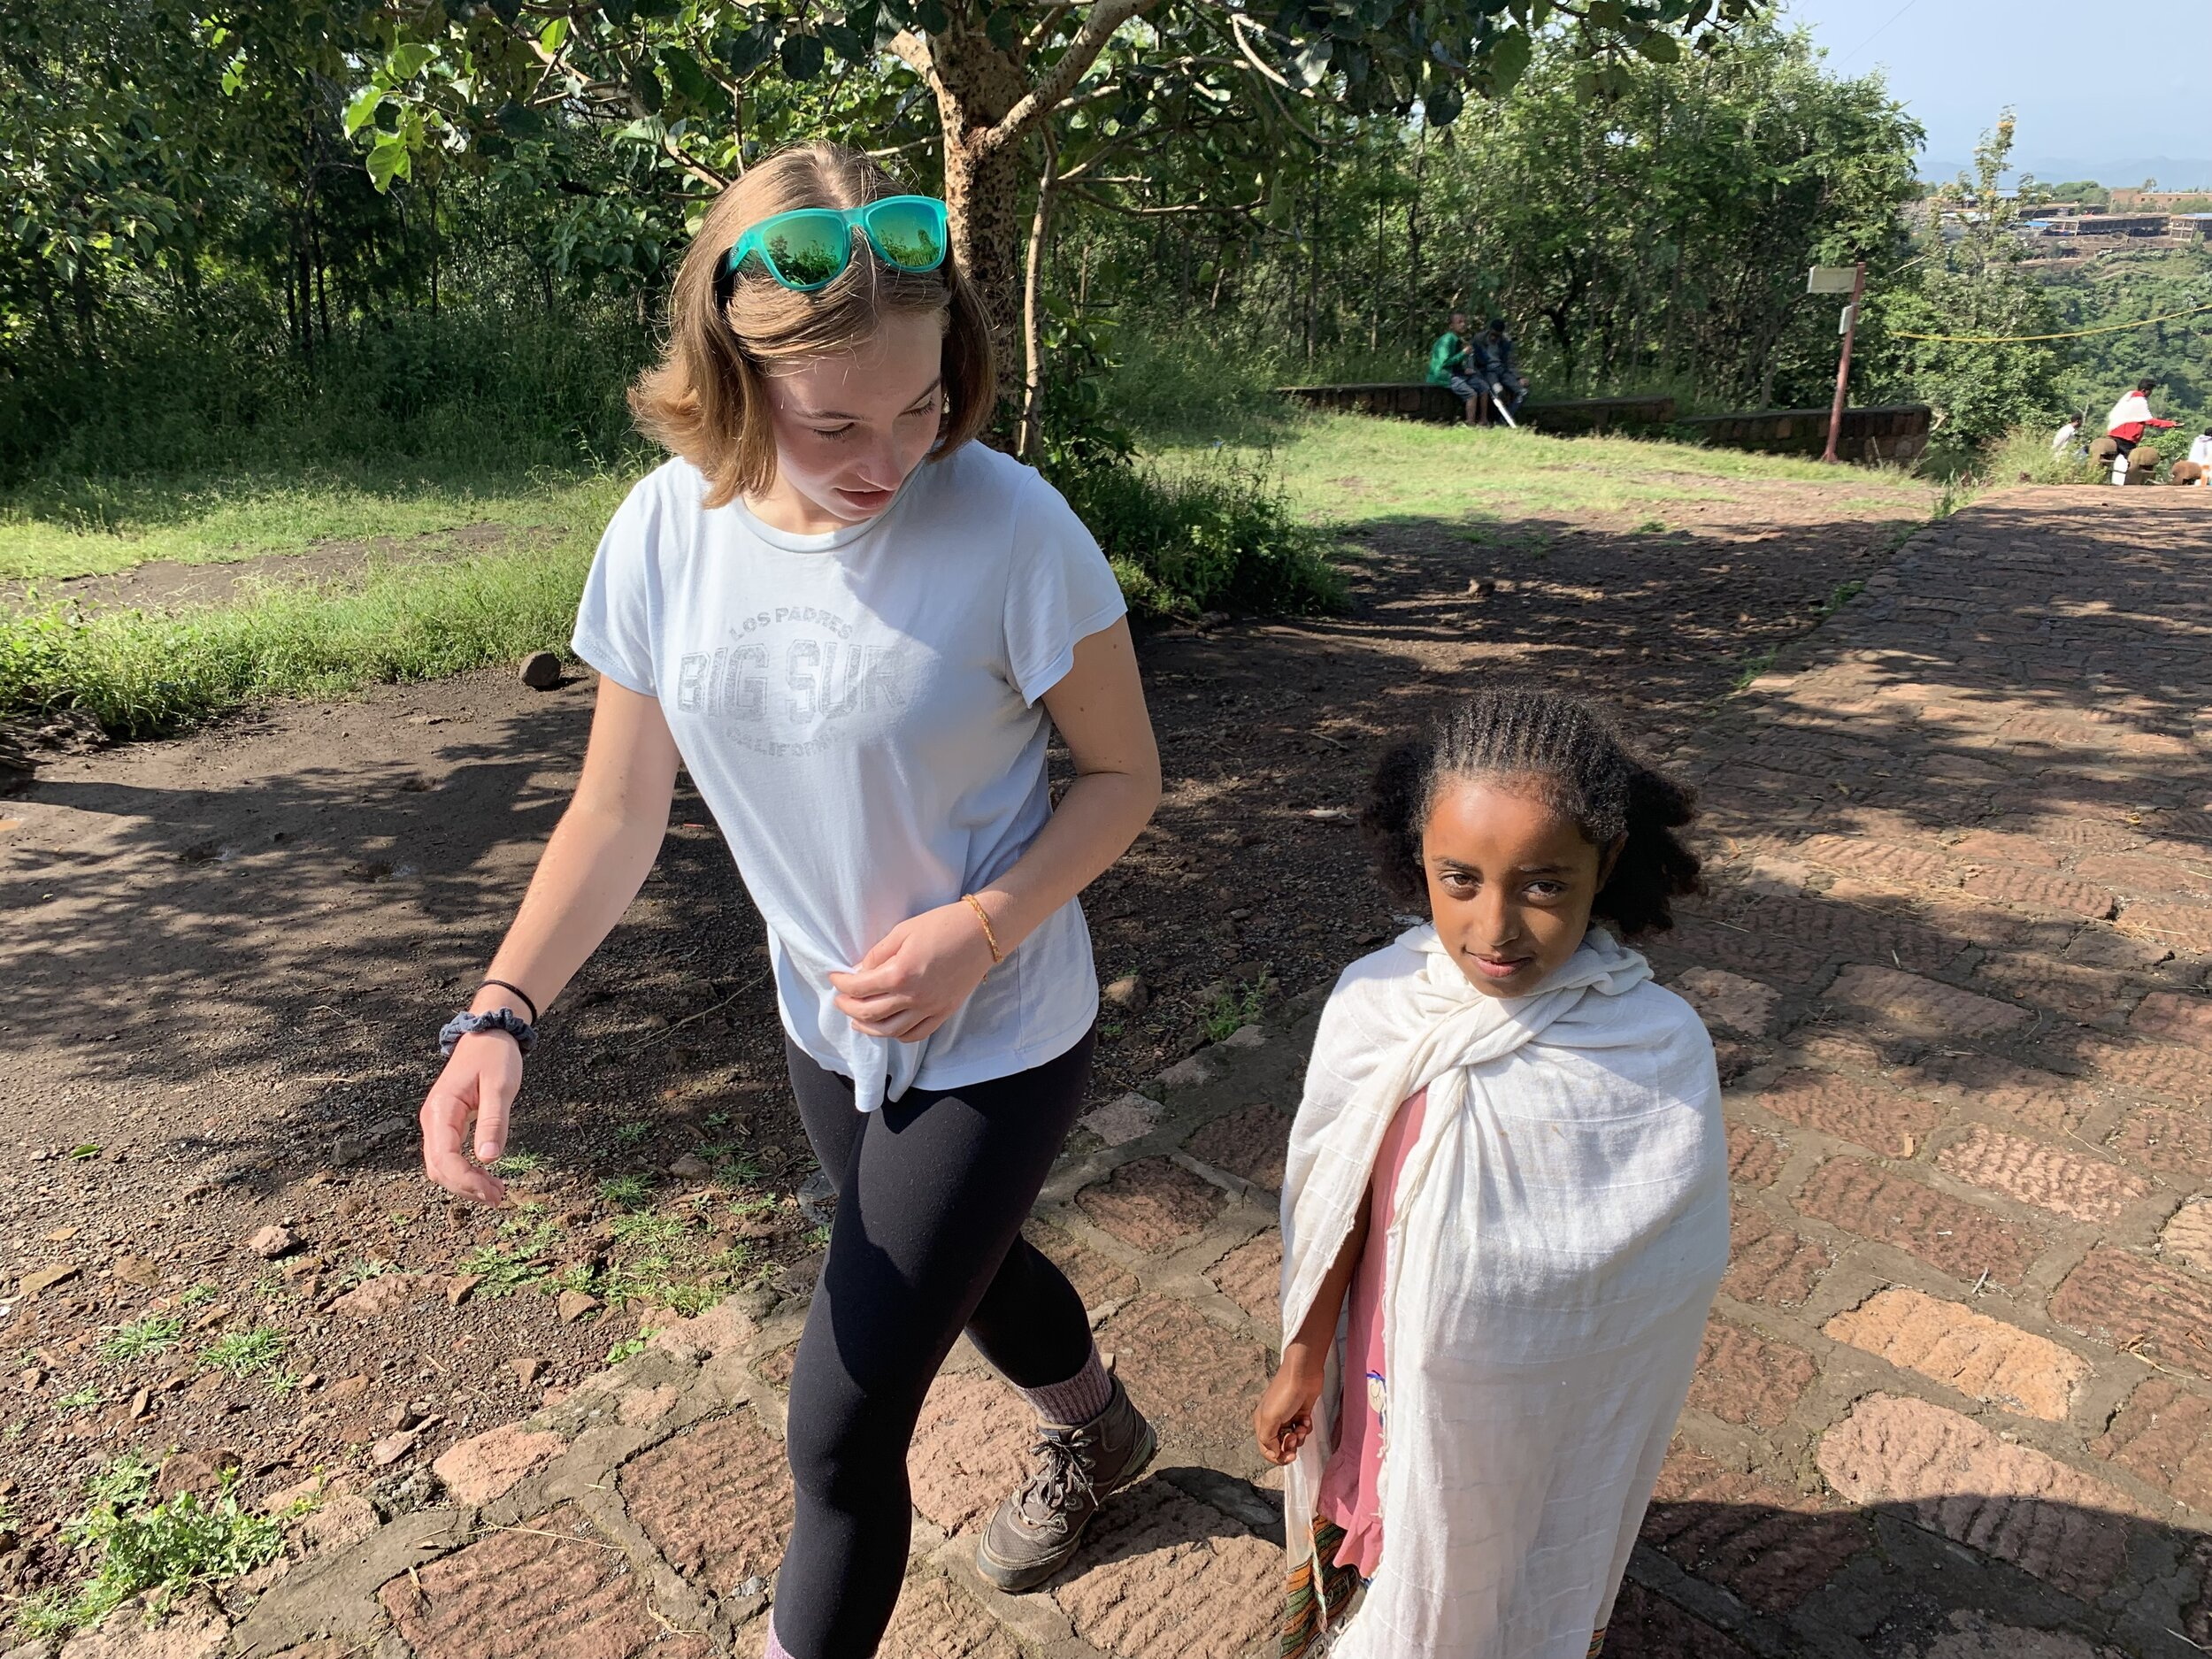 Kids approach us everywhere. This girl (Hannah) was different. Her curious, sincere conversation with Maya on the walk between church clusters was a treat for us all.